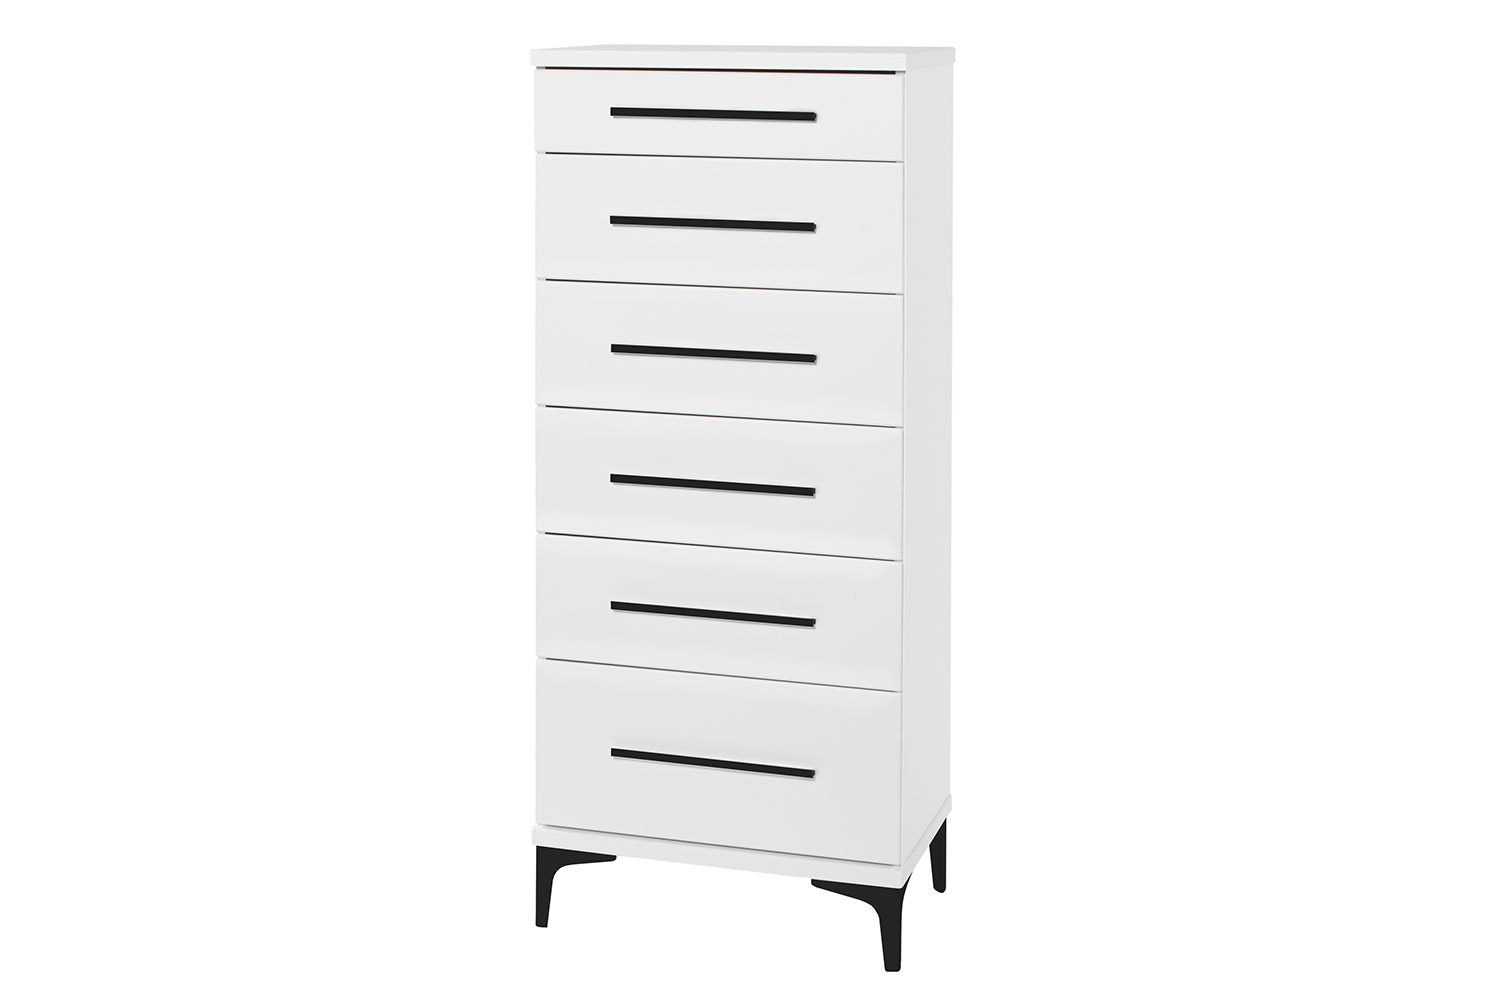 Salento 6 Drawer Slimboy by Compac Furniture - Black